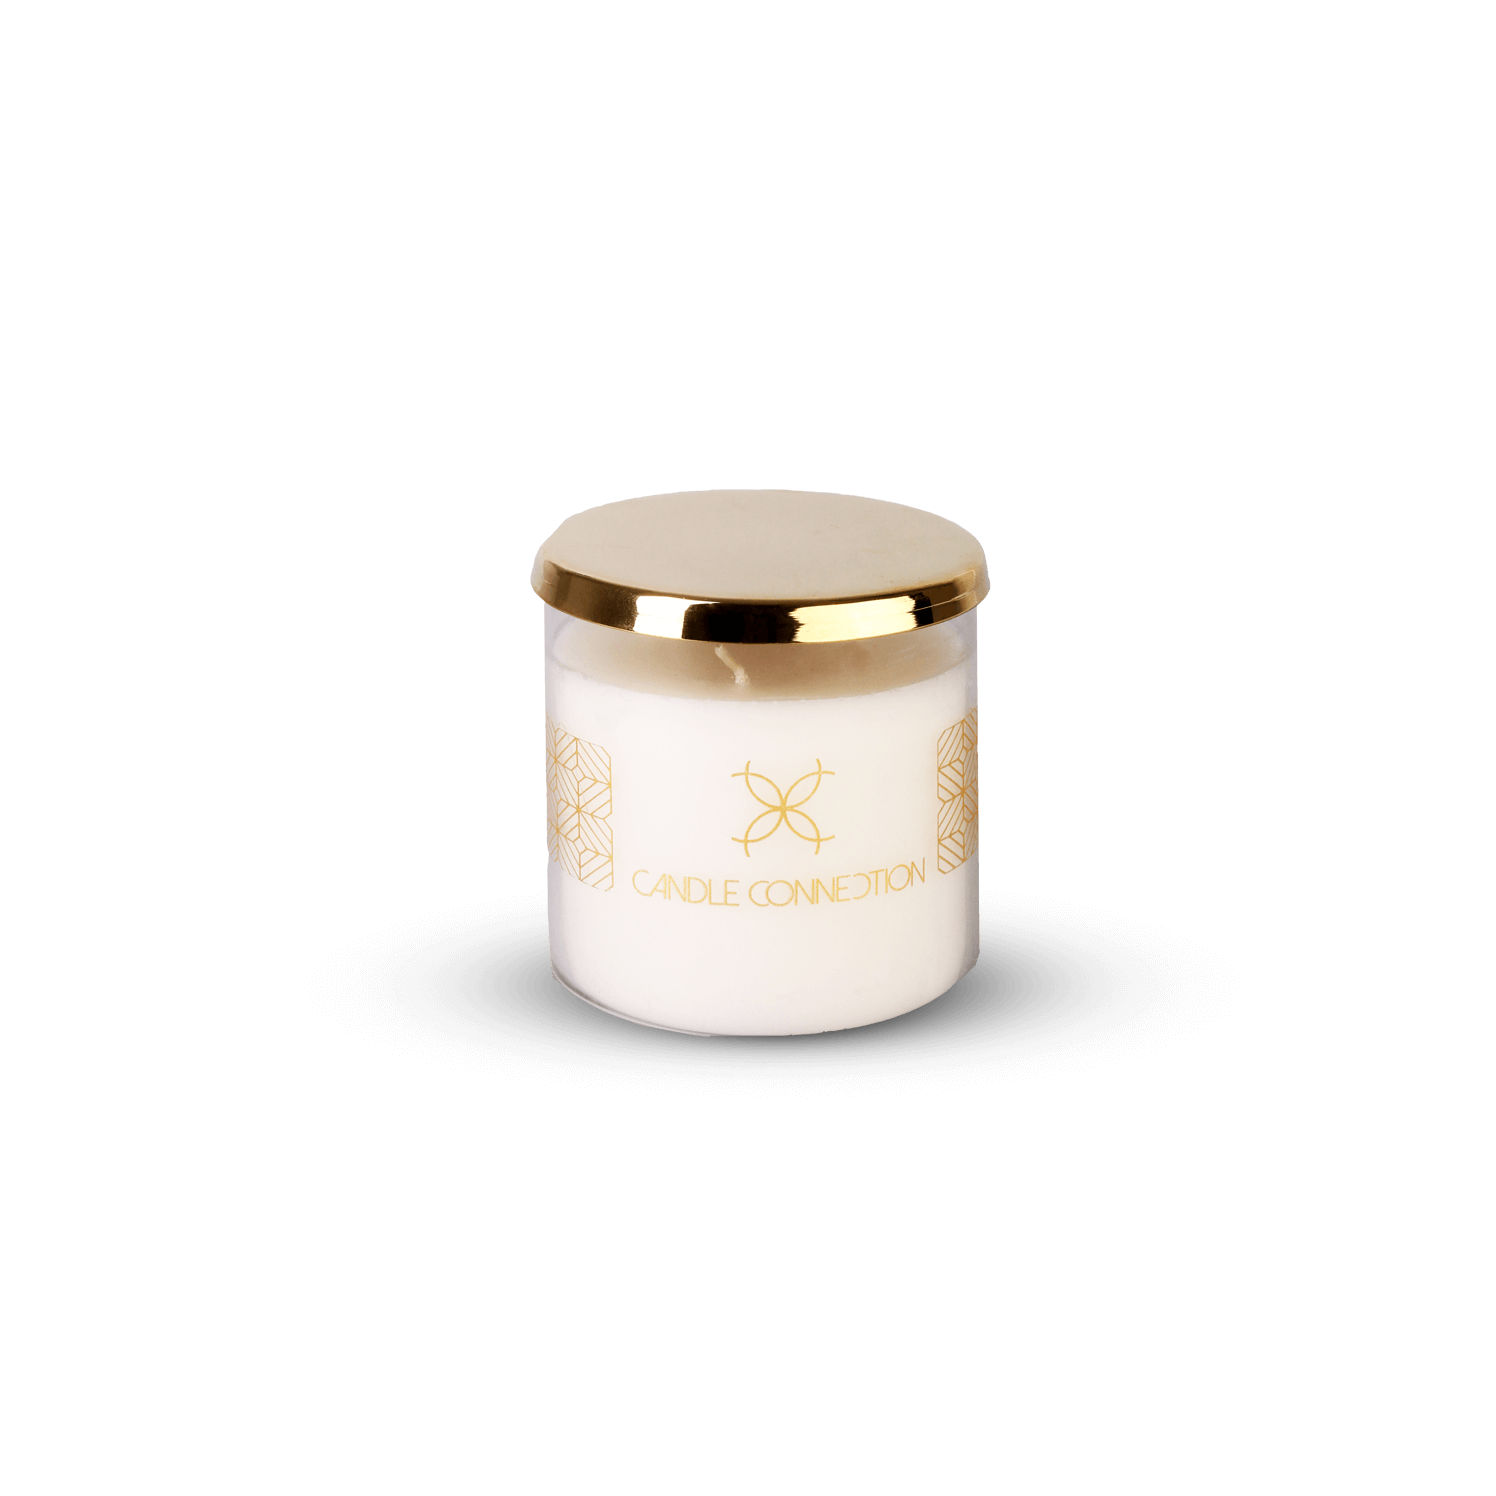 Candle Connection Bubbles • Home Fragrance • Source Beauty Egypt